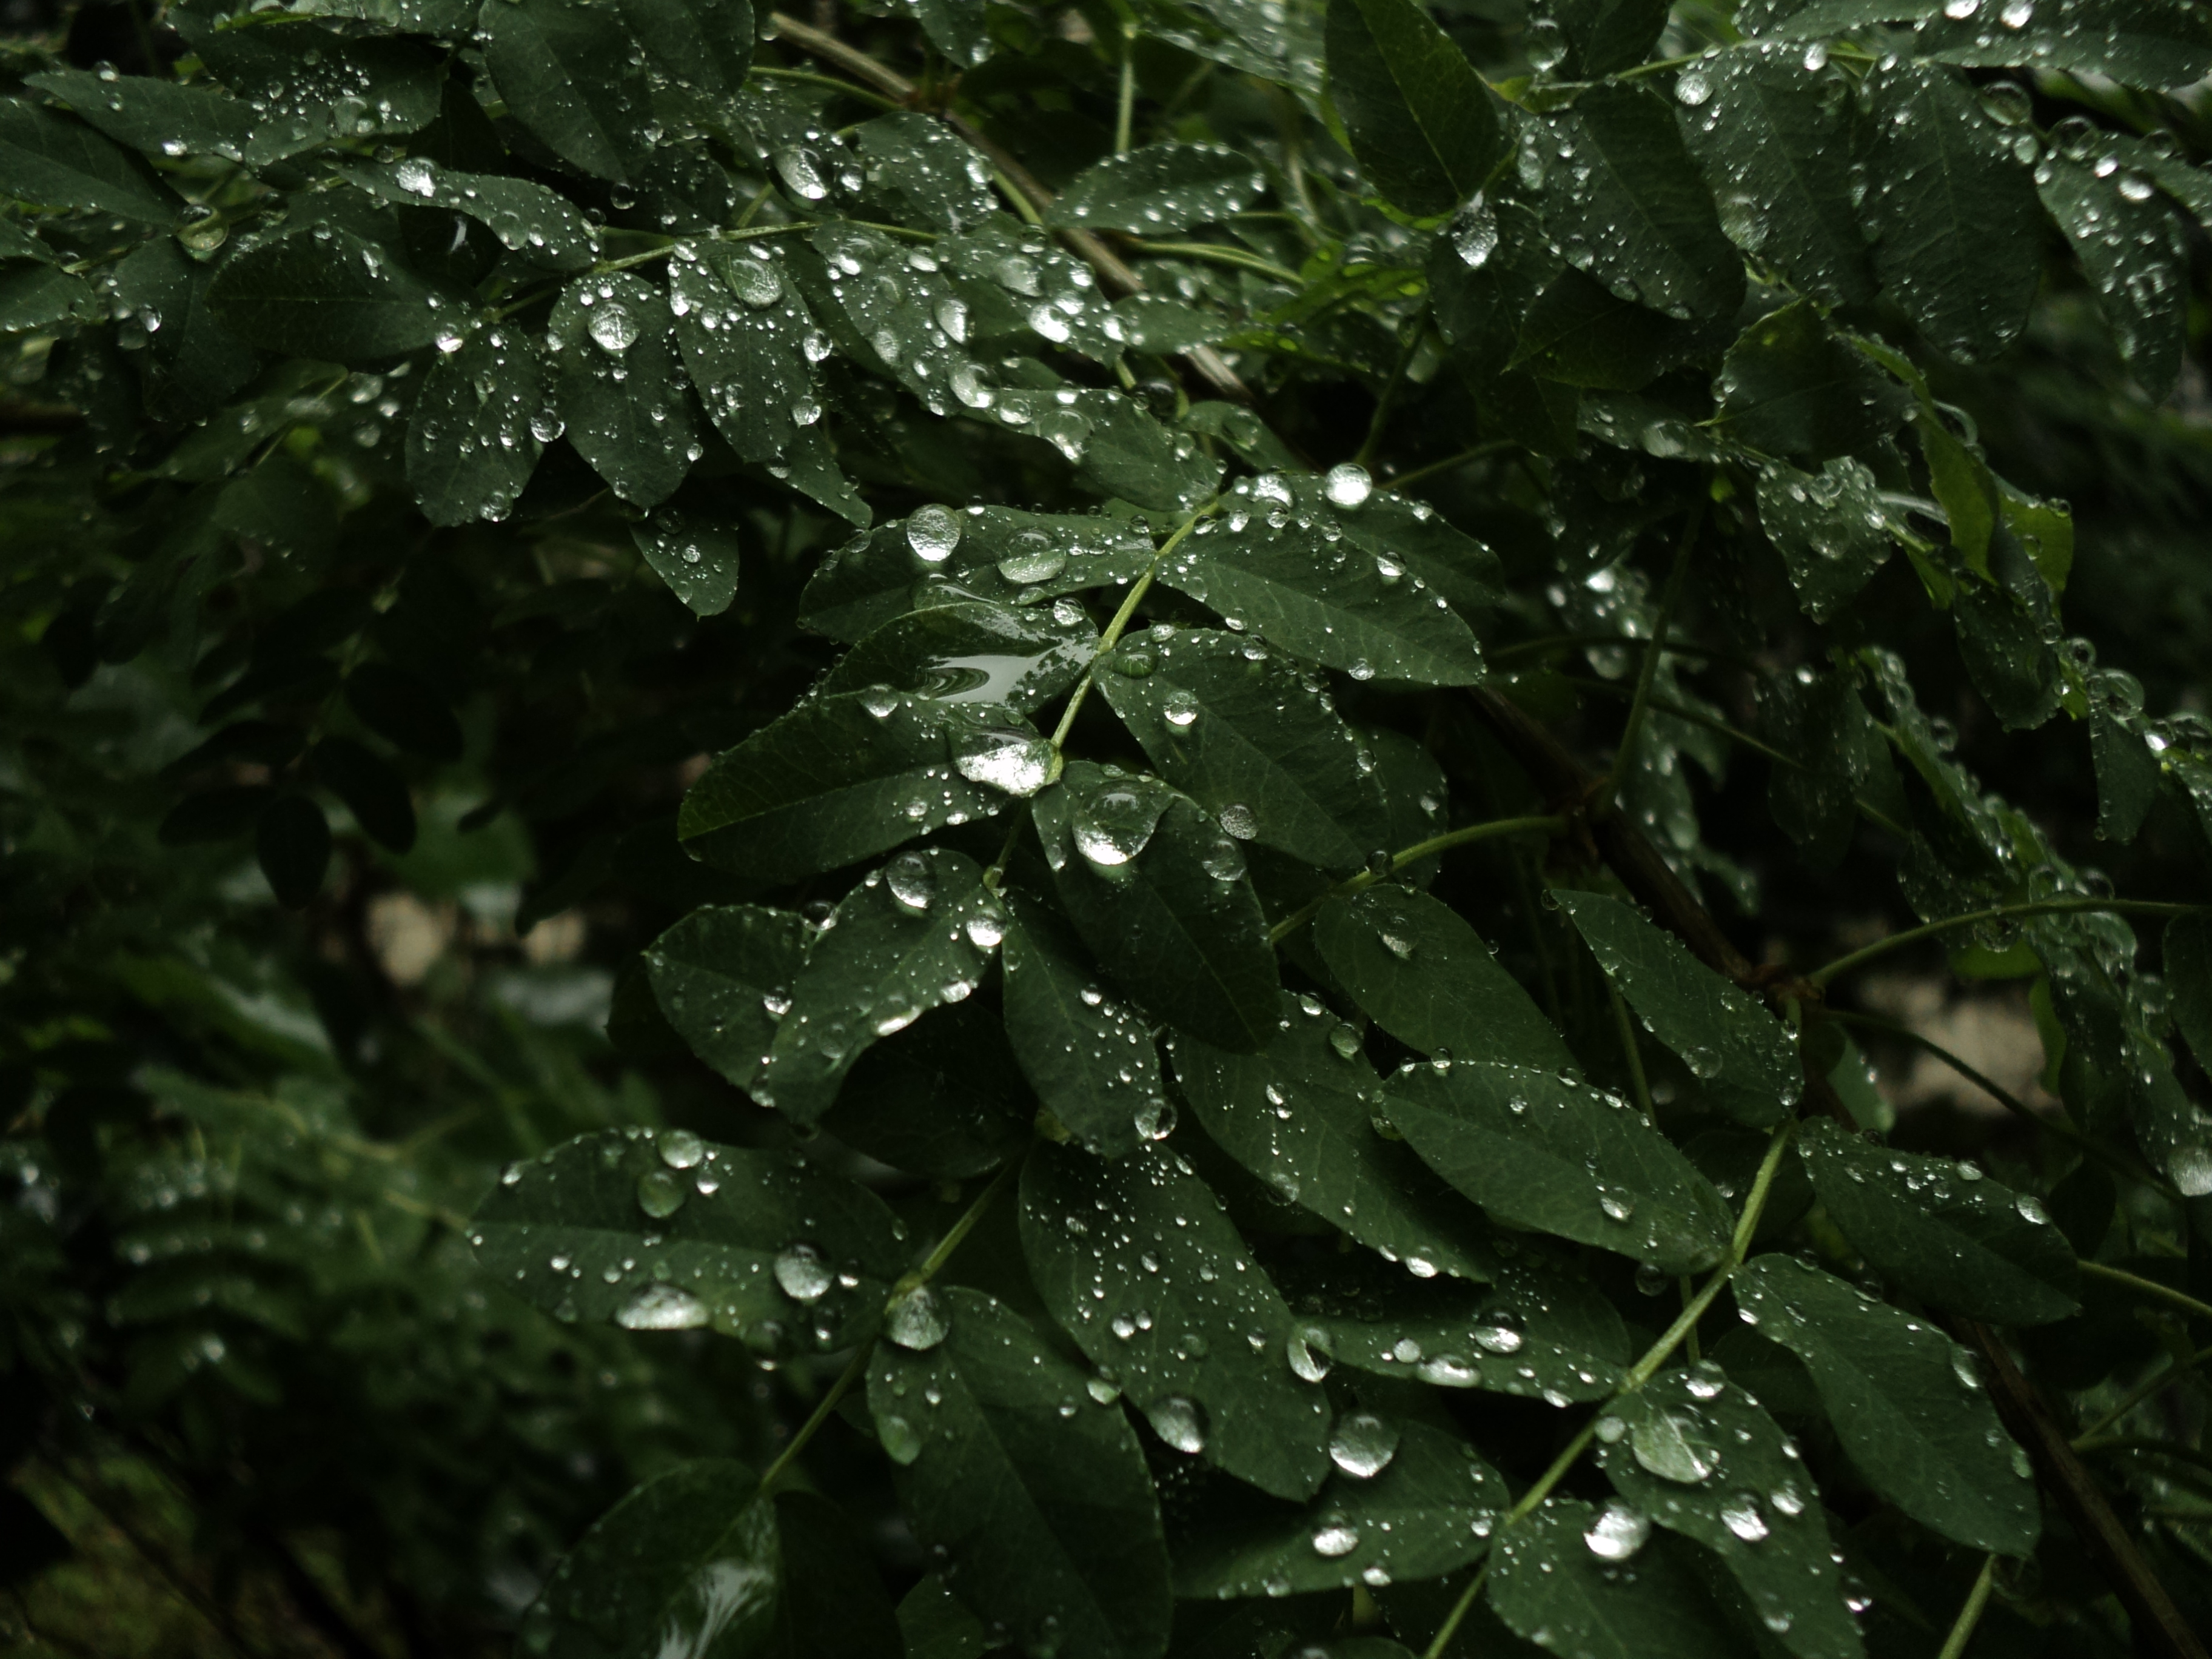 Wet leaves, Droplets, Green, Leaves, Raindrops, HQ Photo